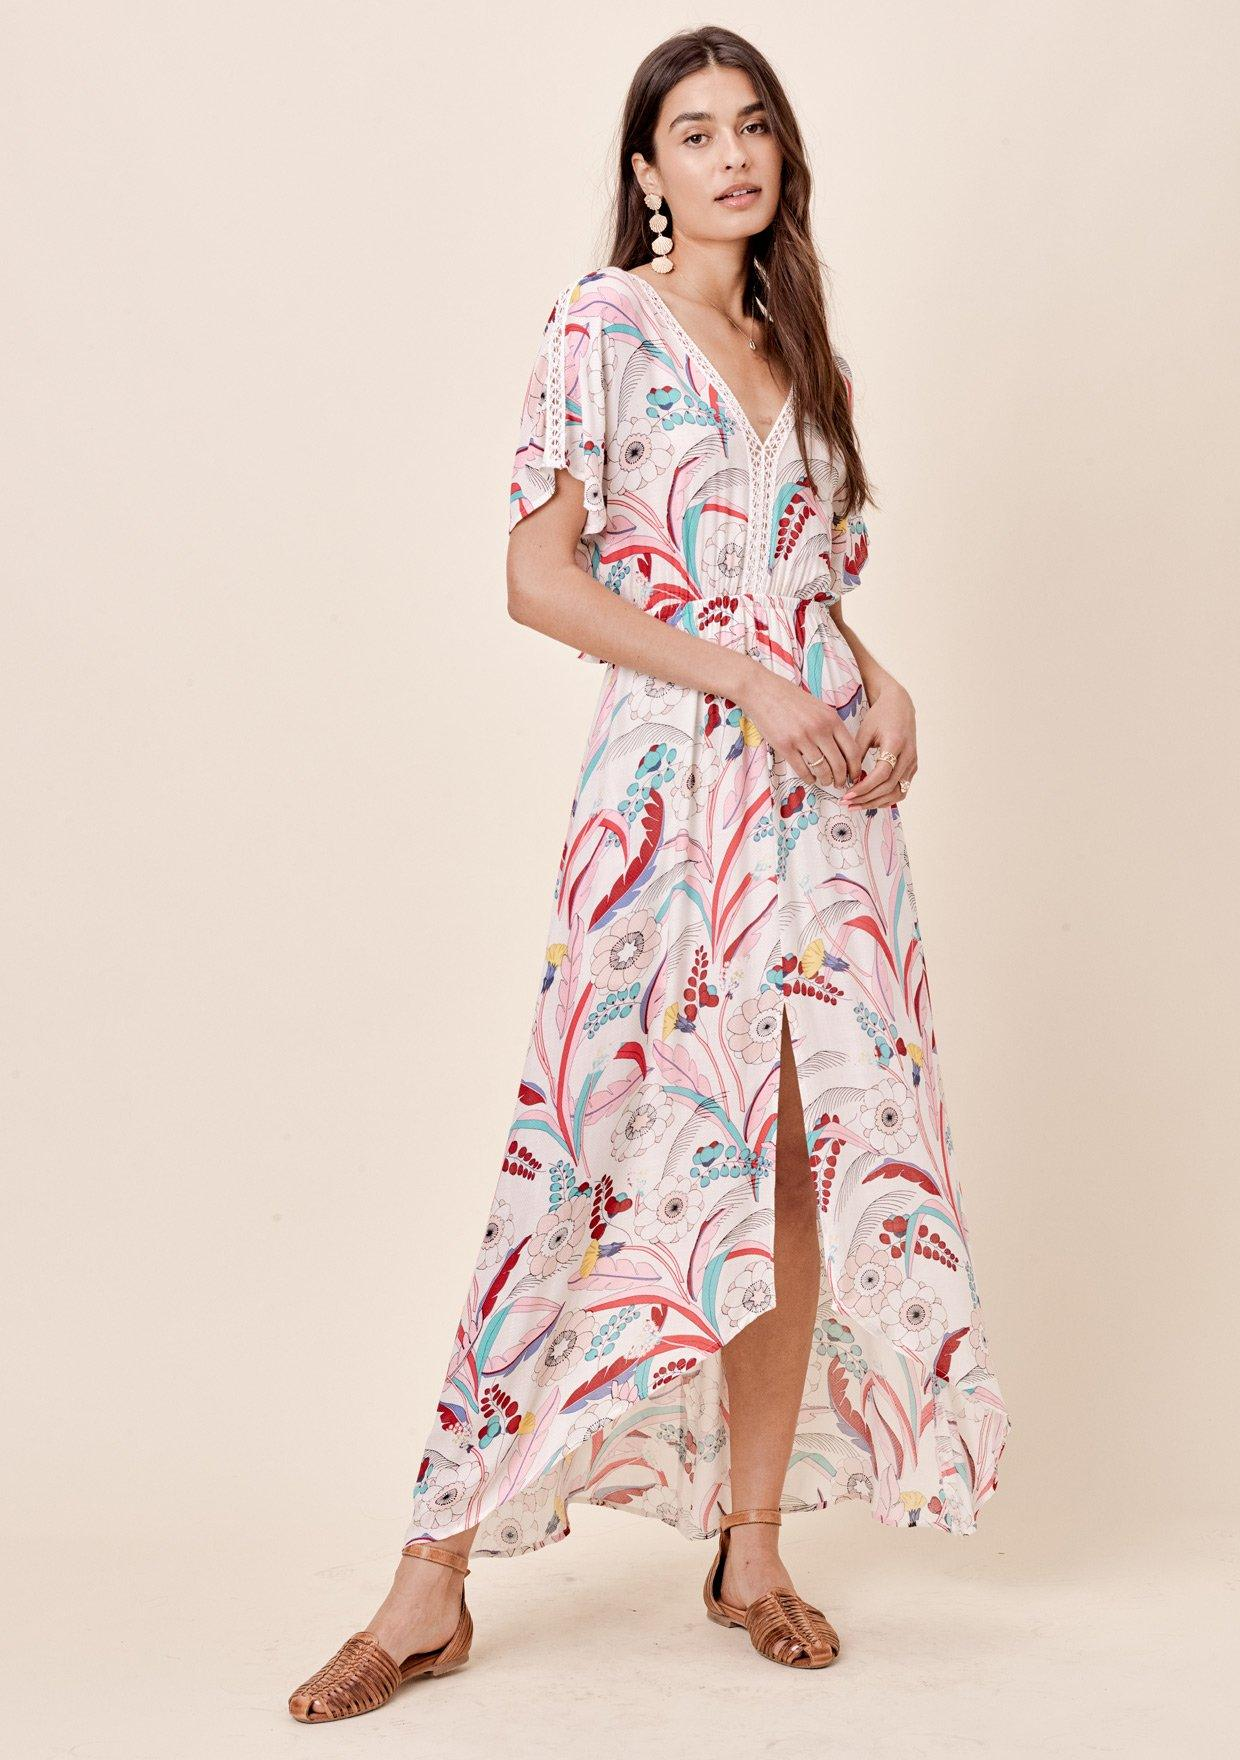 [Color: Taupe/Pink] Lovestitch whimsical floral printed maxi dress with crochet lace insets and tie back.